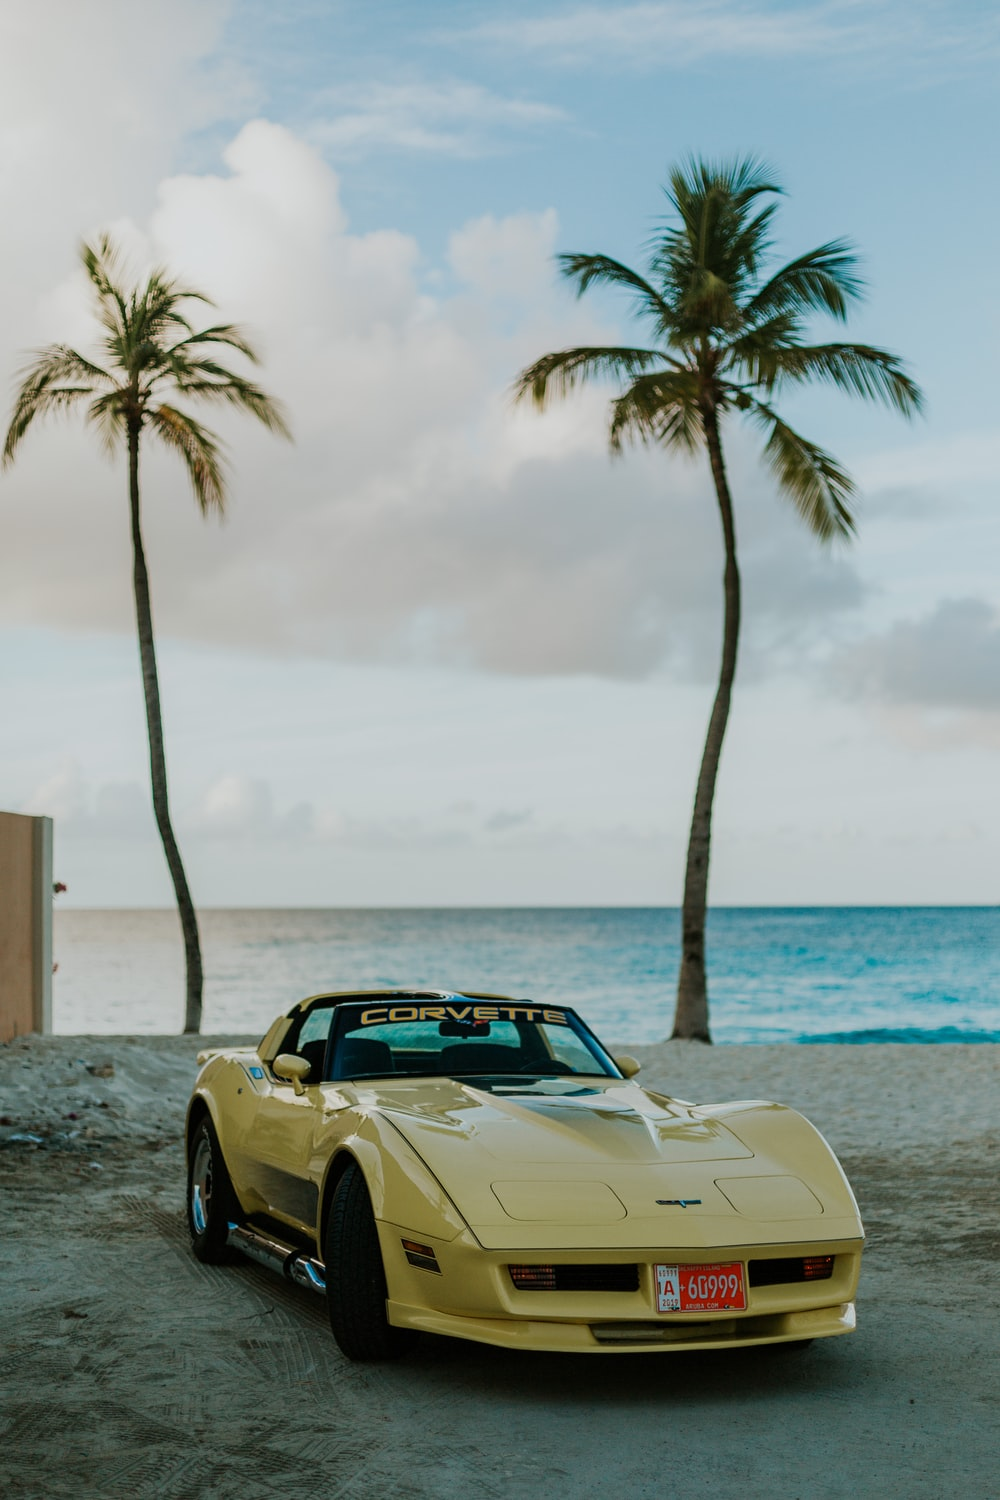 white convertible car parked on beach during daytime